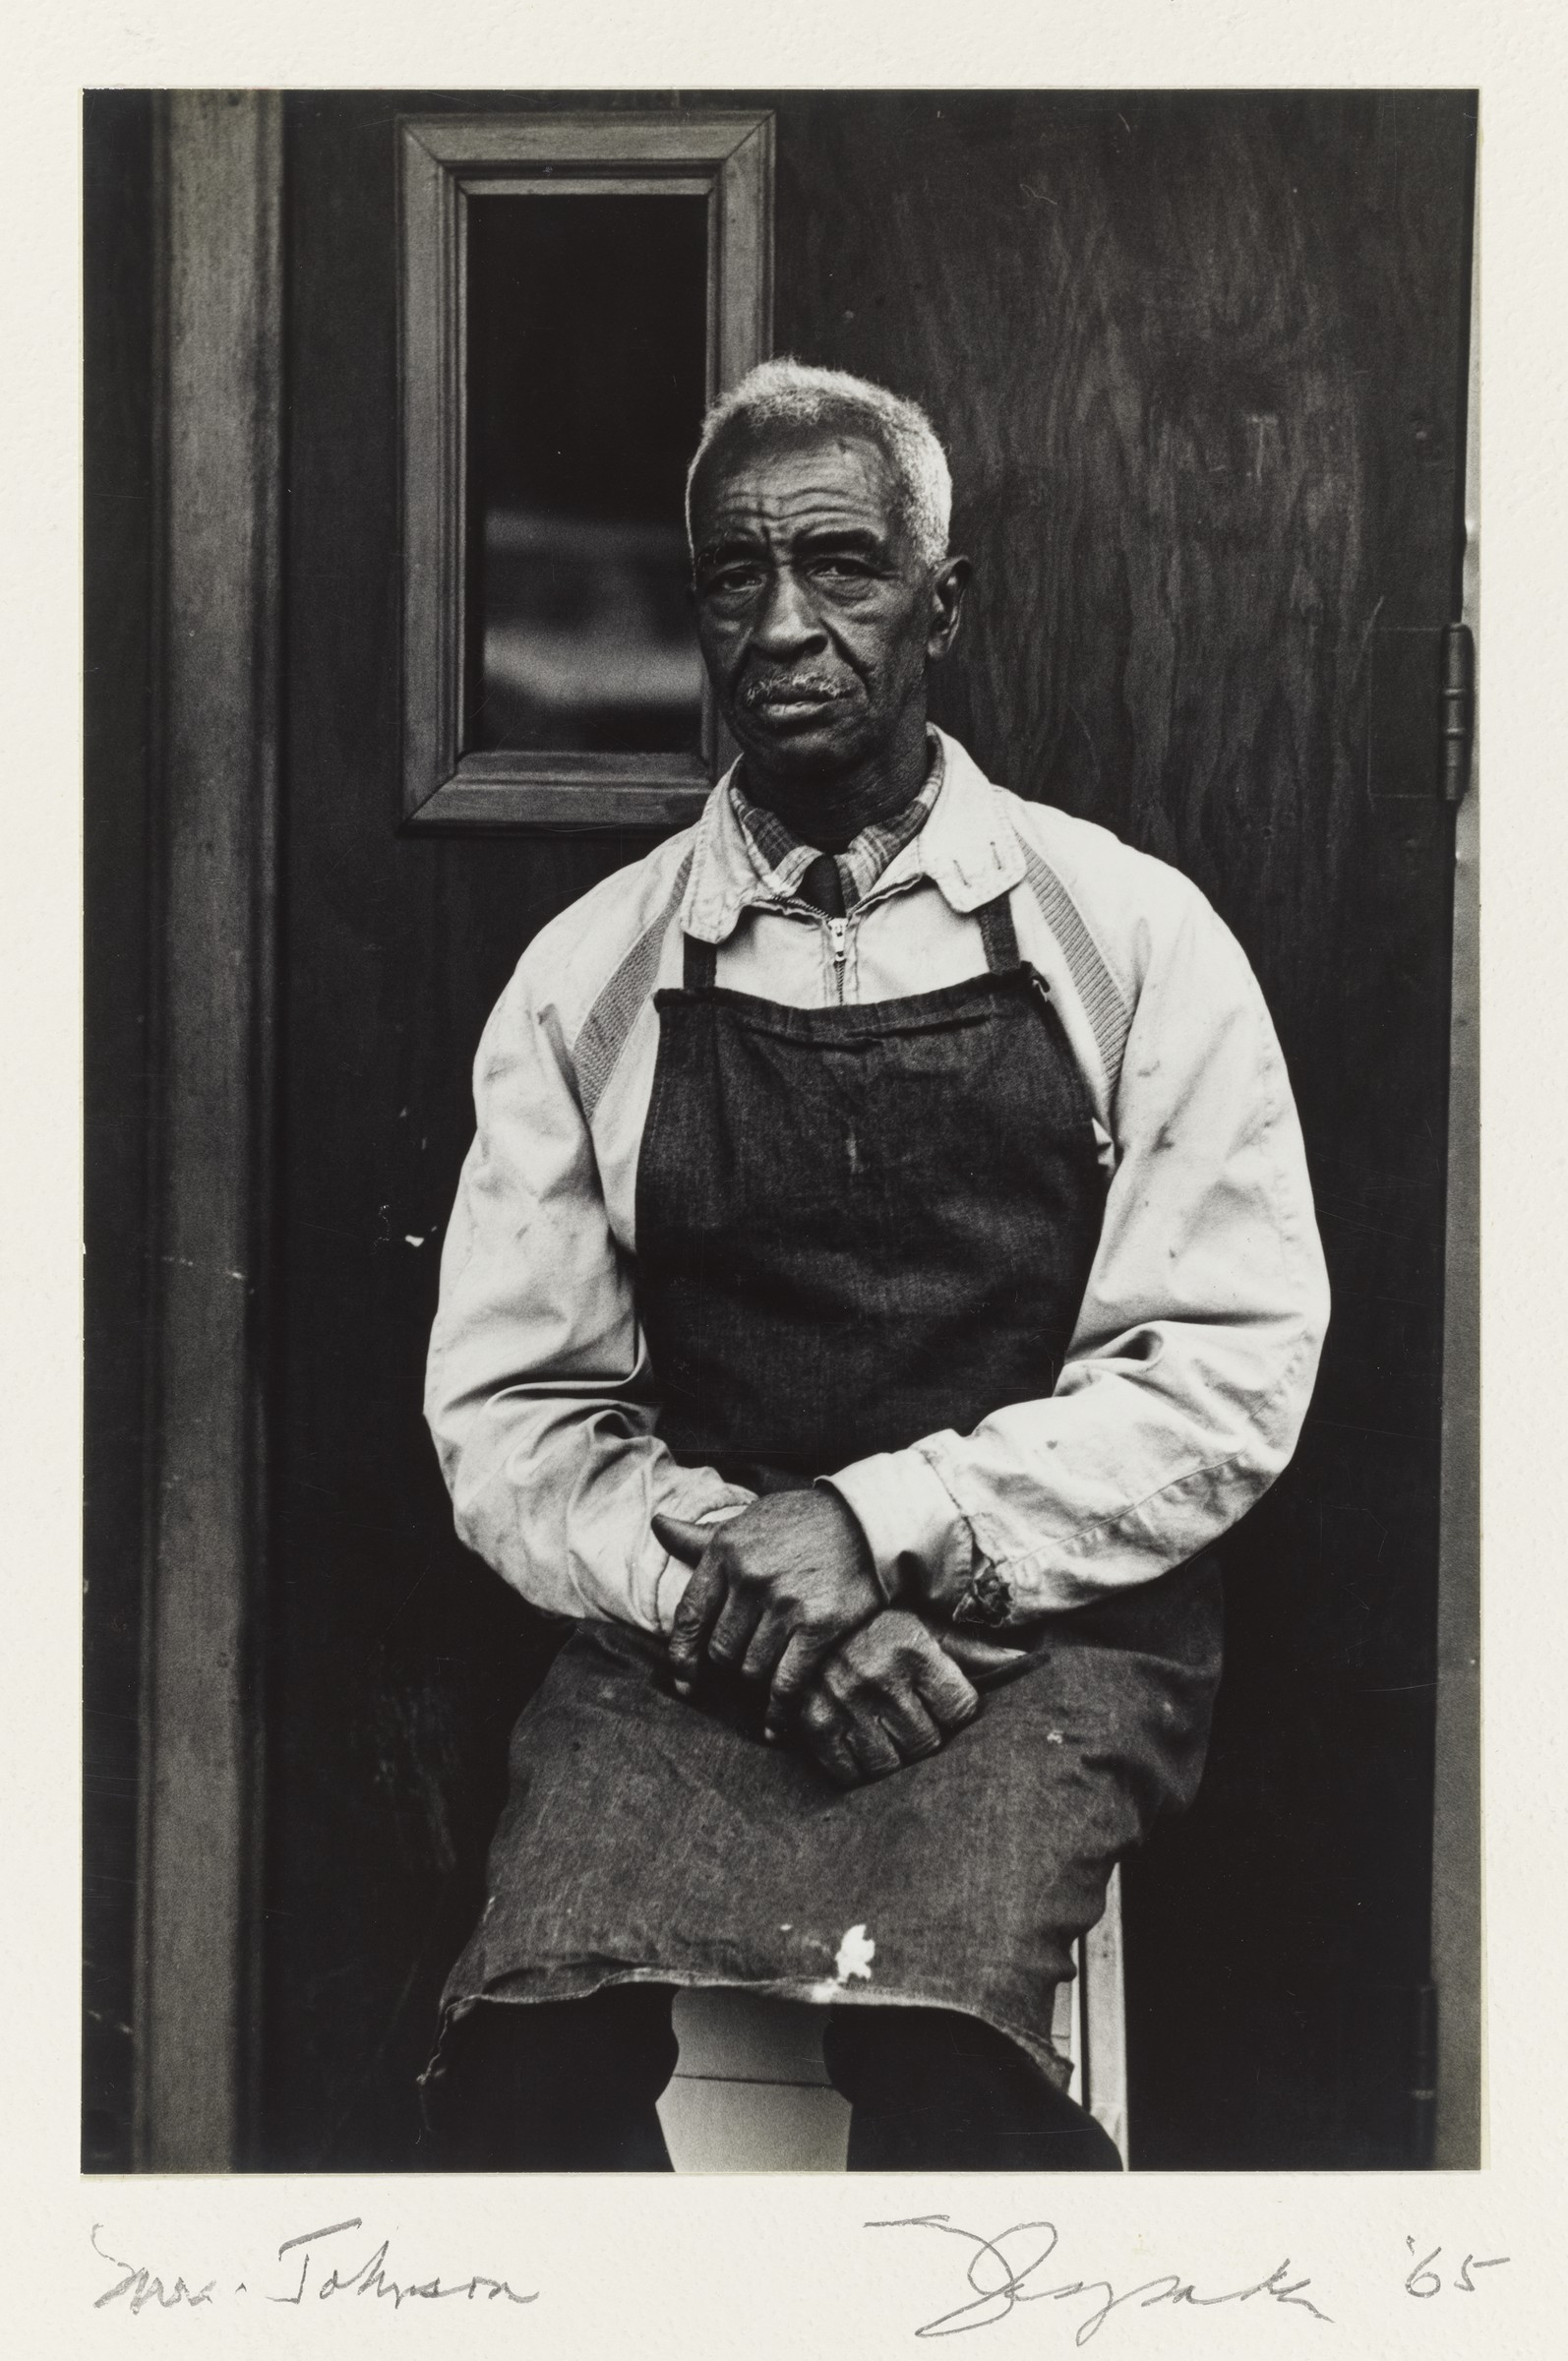 Frank Espada, Mr. Johnson, seated; Blake Avenue, New York, 1965. Gelatin silver print. Harvard Art Museums/Fogg Museum, Richard and Ronay Menschel Fund for the Acquisition of Photographs, 2018.102.